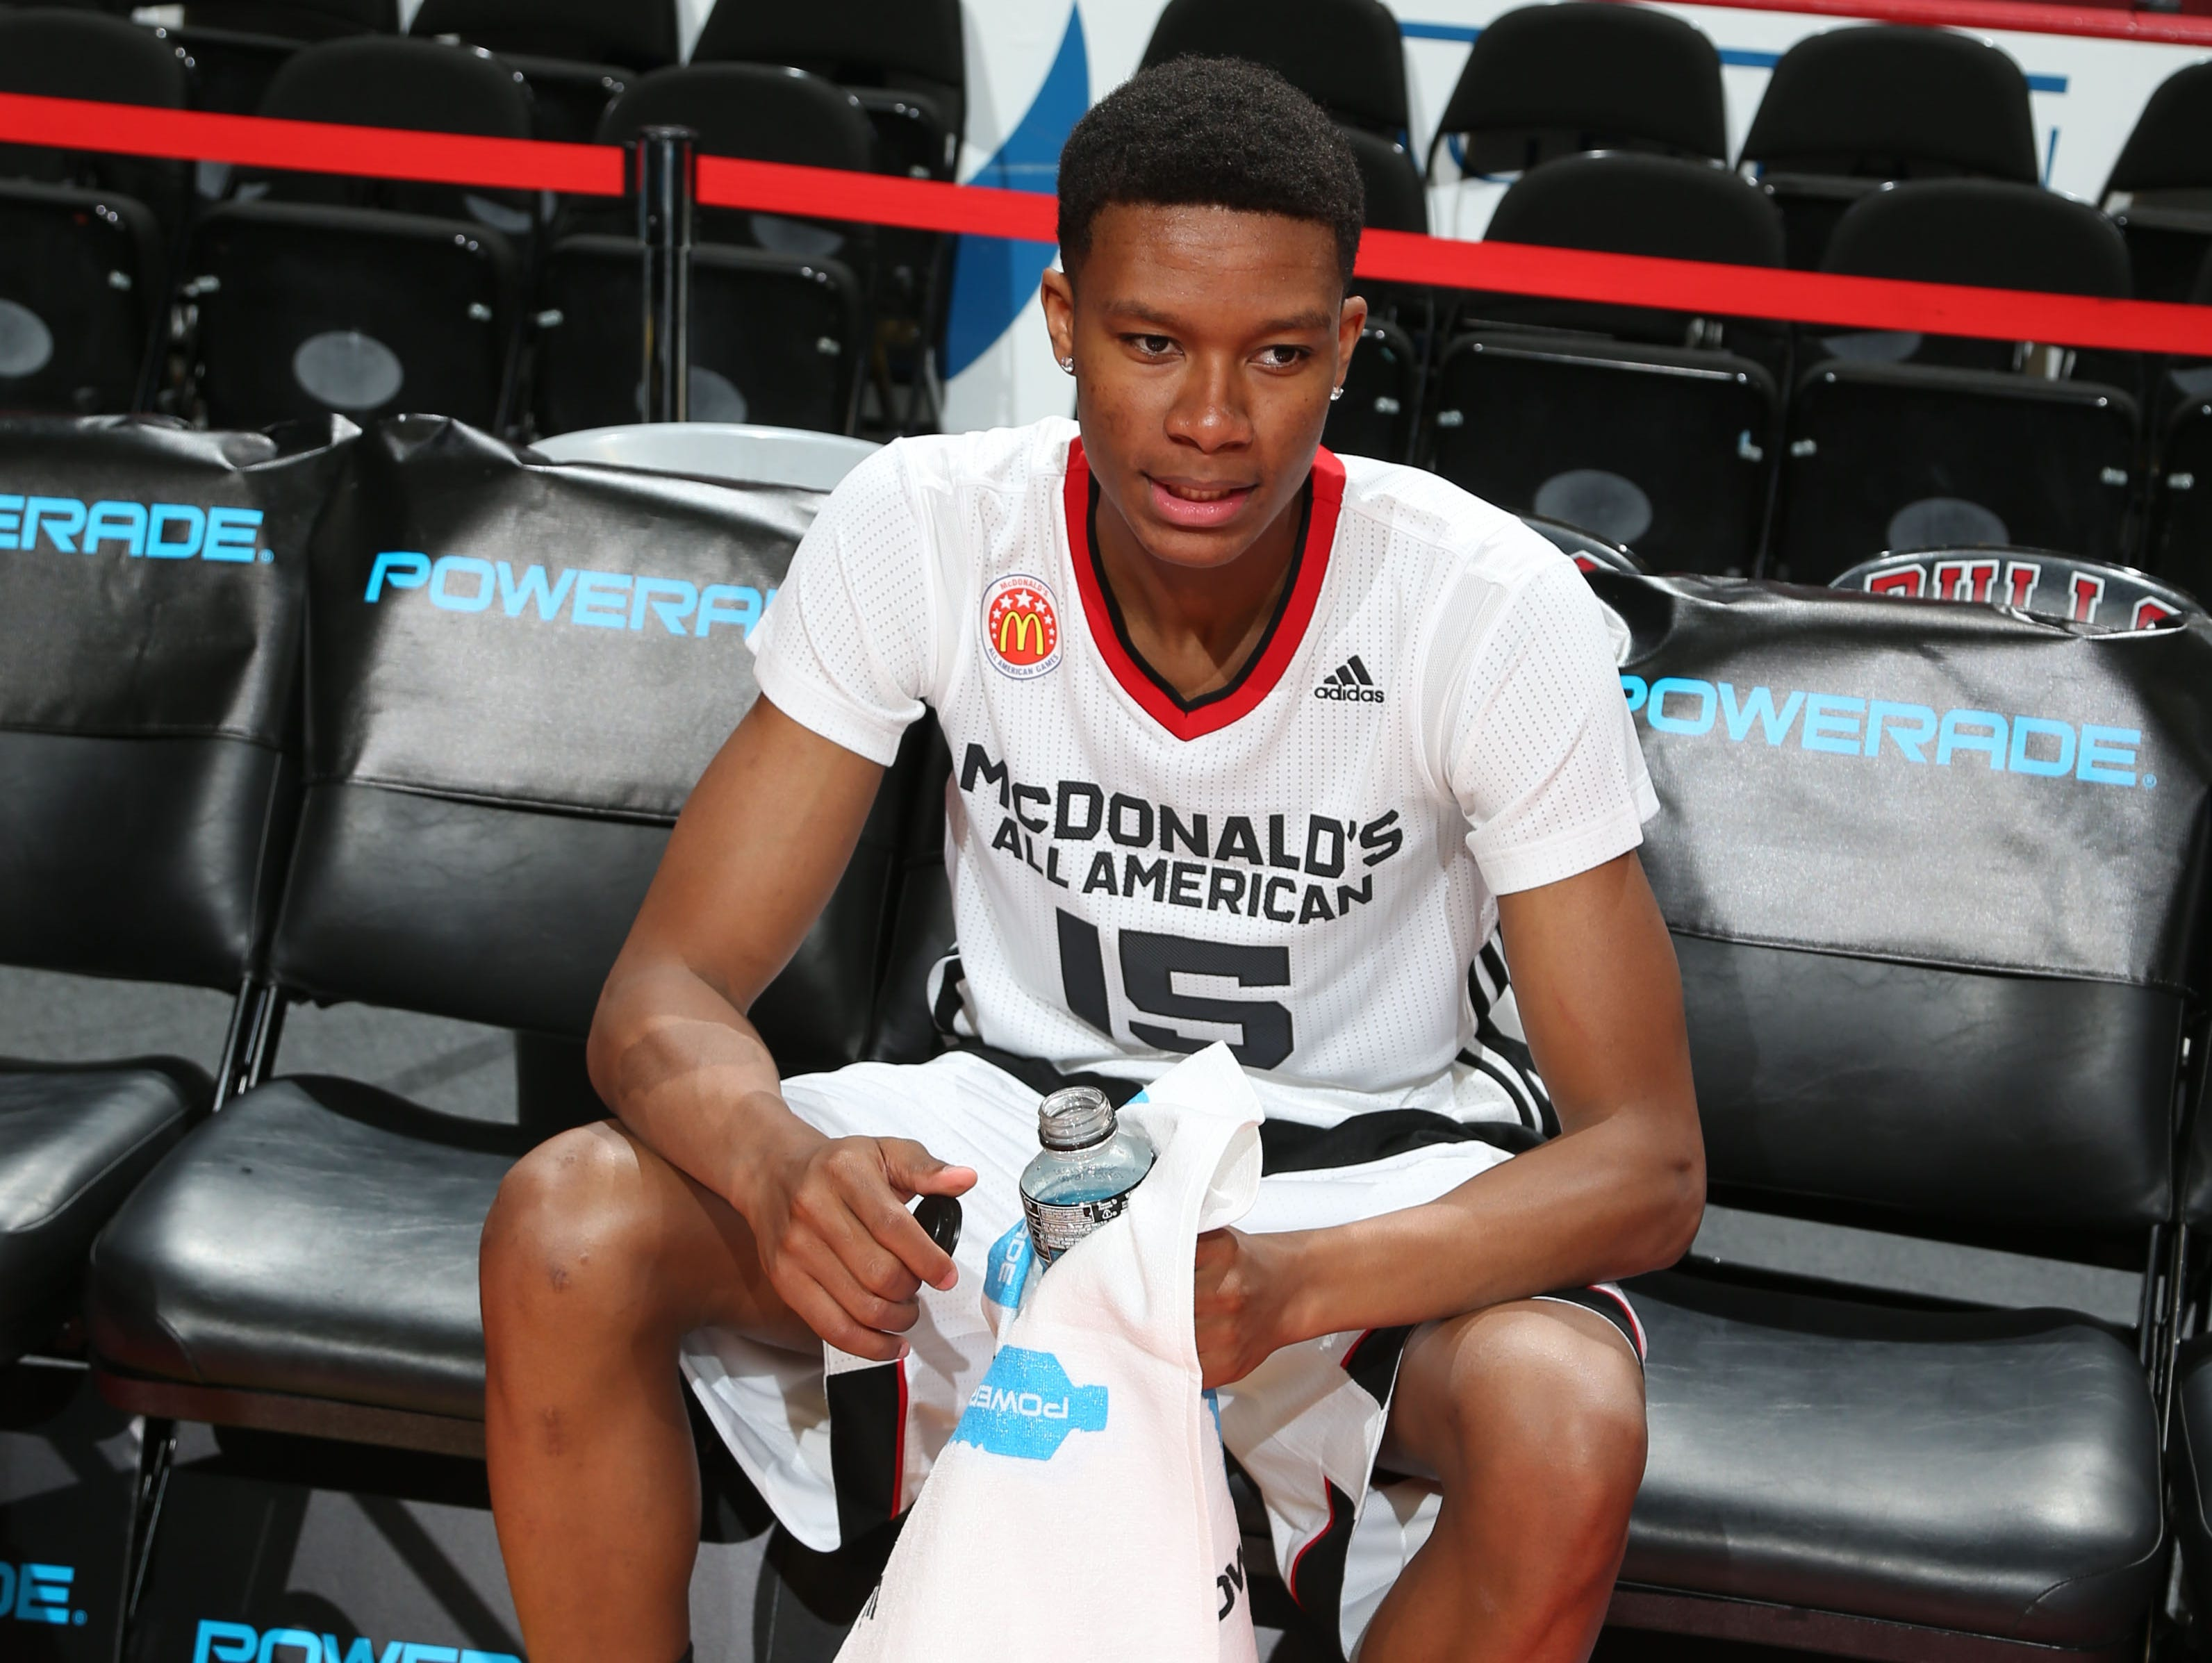 Apr 1, 2015; Chicago, IL, USA; McDonalds High School All American forward PJ Dozier (15) warms up before the start of the McDonalds High School All American Games at the United Center. Mandatory Credit: Brian Spurlock-USA TODAY Sports